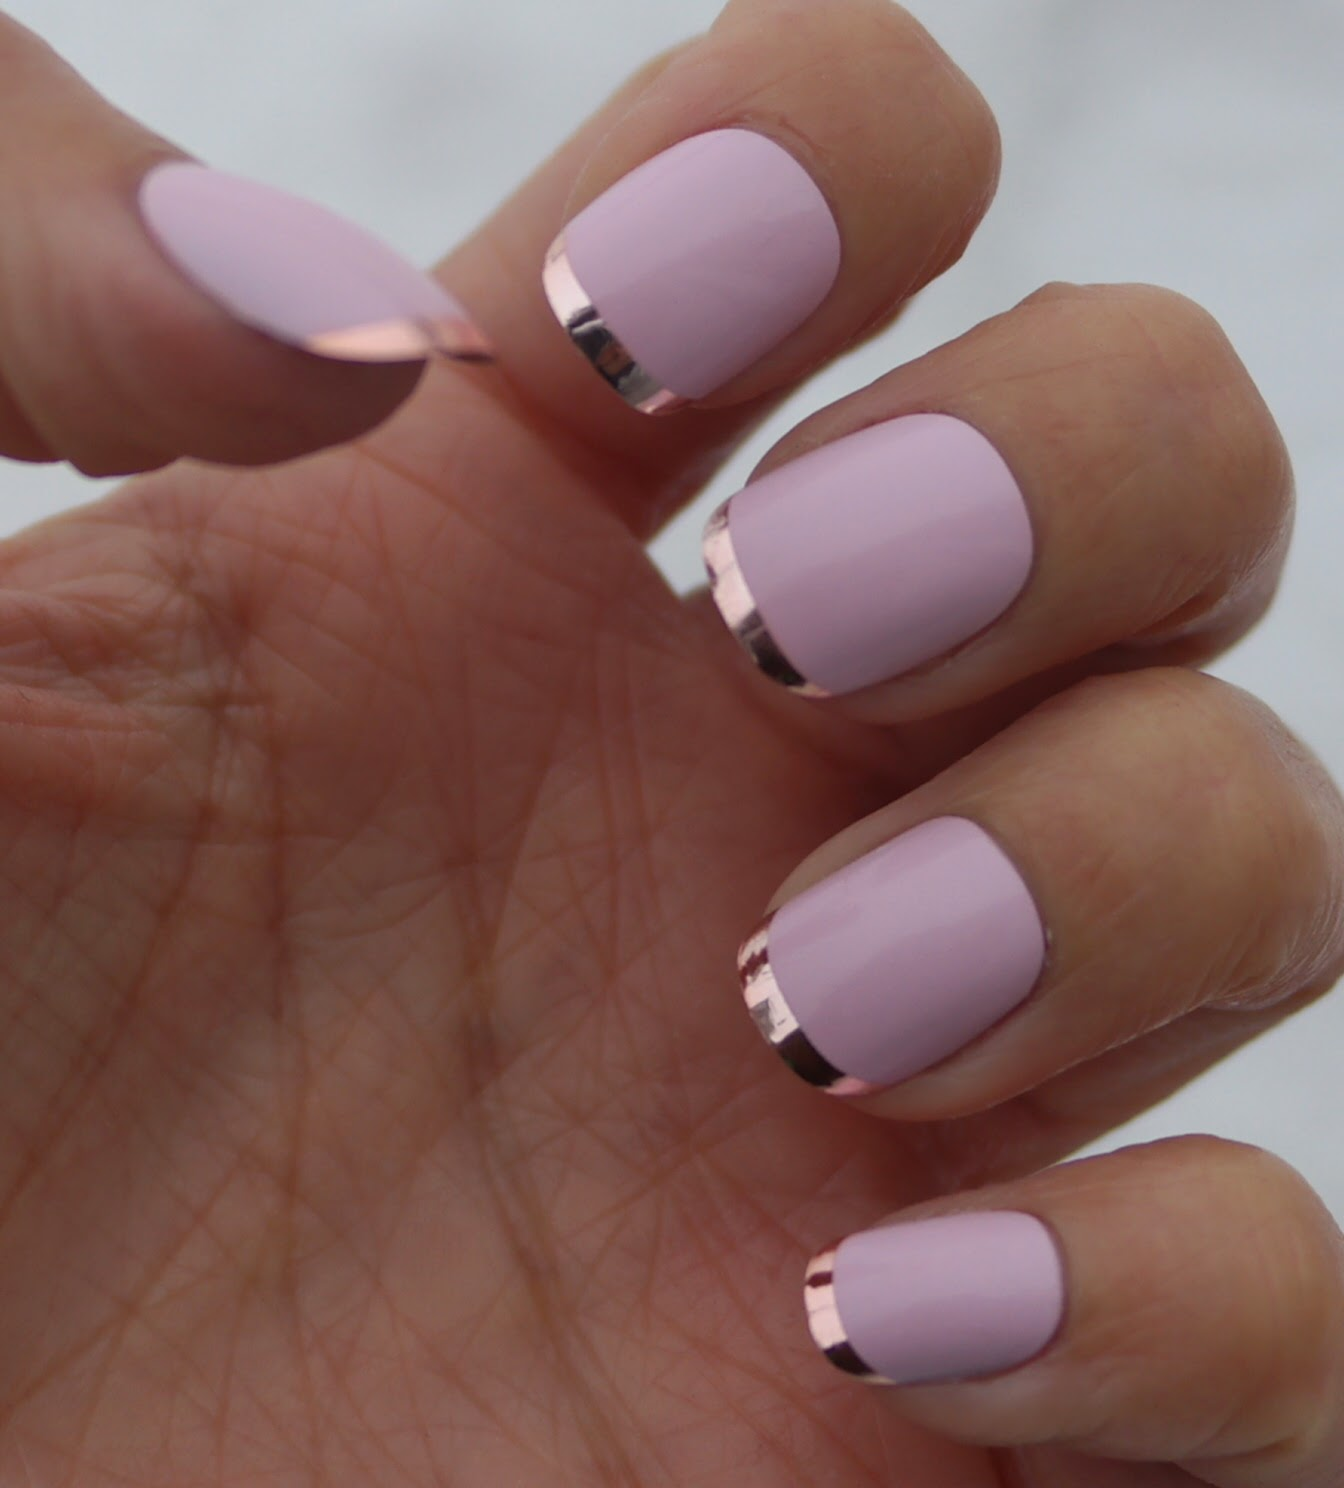 08e5b2298708e The nails sized up well to my own nails and after putting a small amount of  glue onto the back of the false nail it stuck so quickly with no mess or  fuss at ...